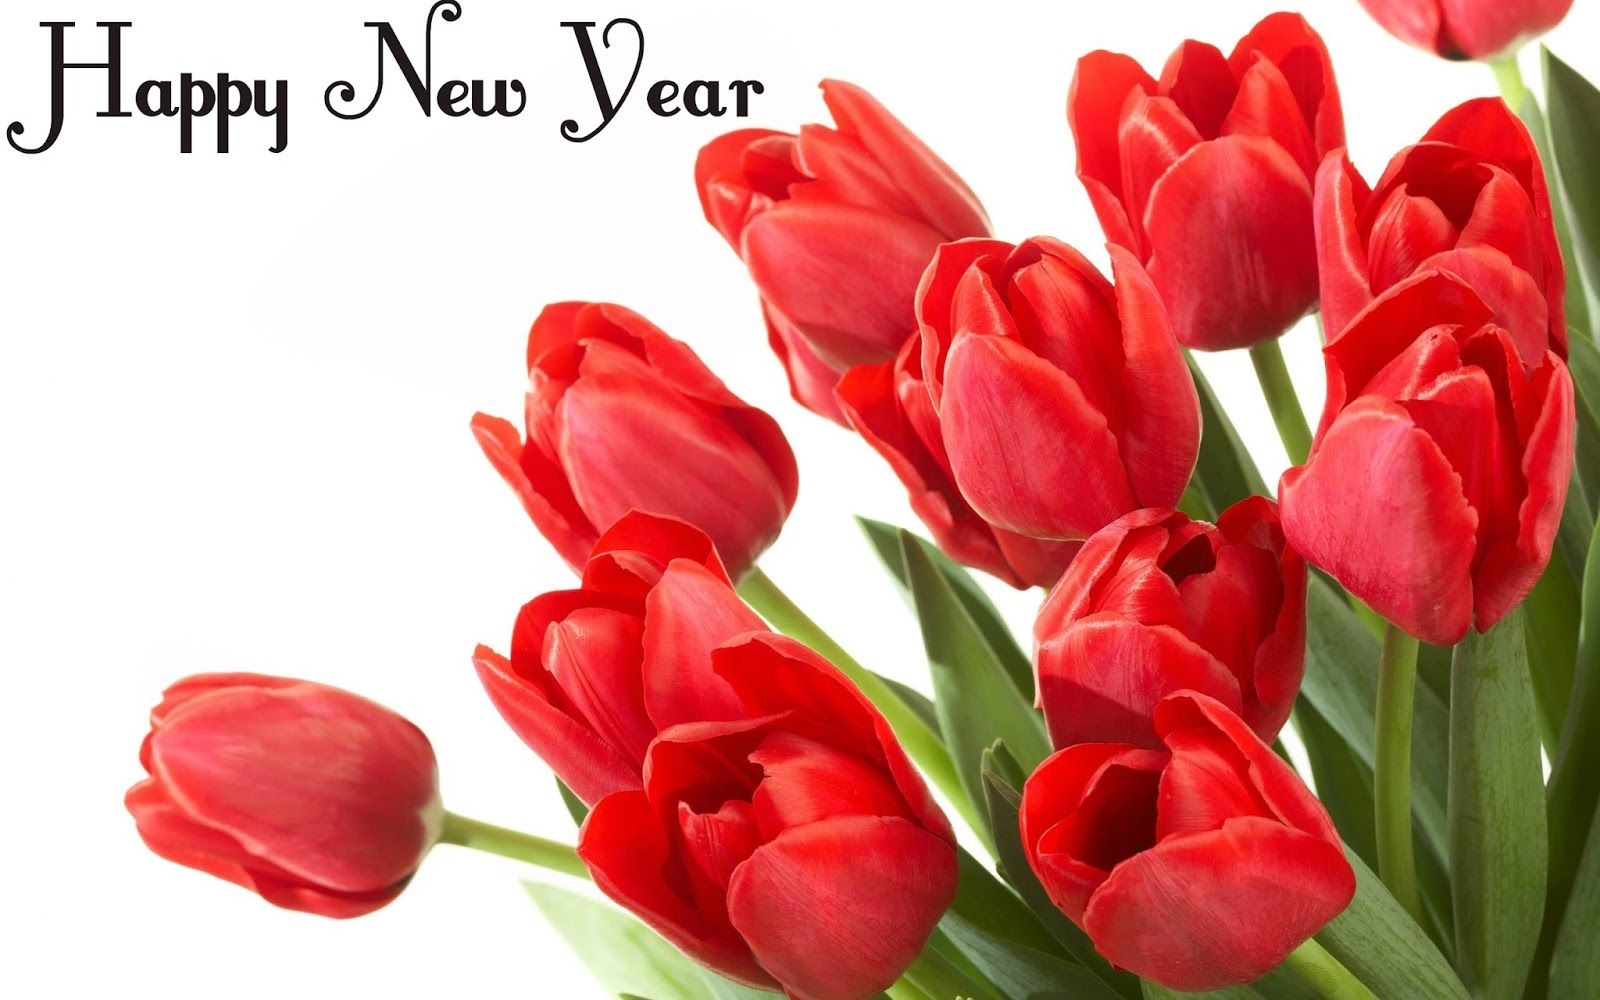 Happy New Year 2016 Flowers Photo Bouquets Wallpapers